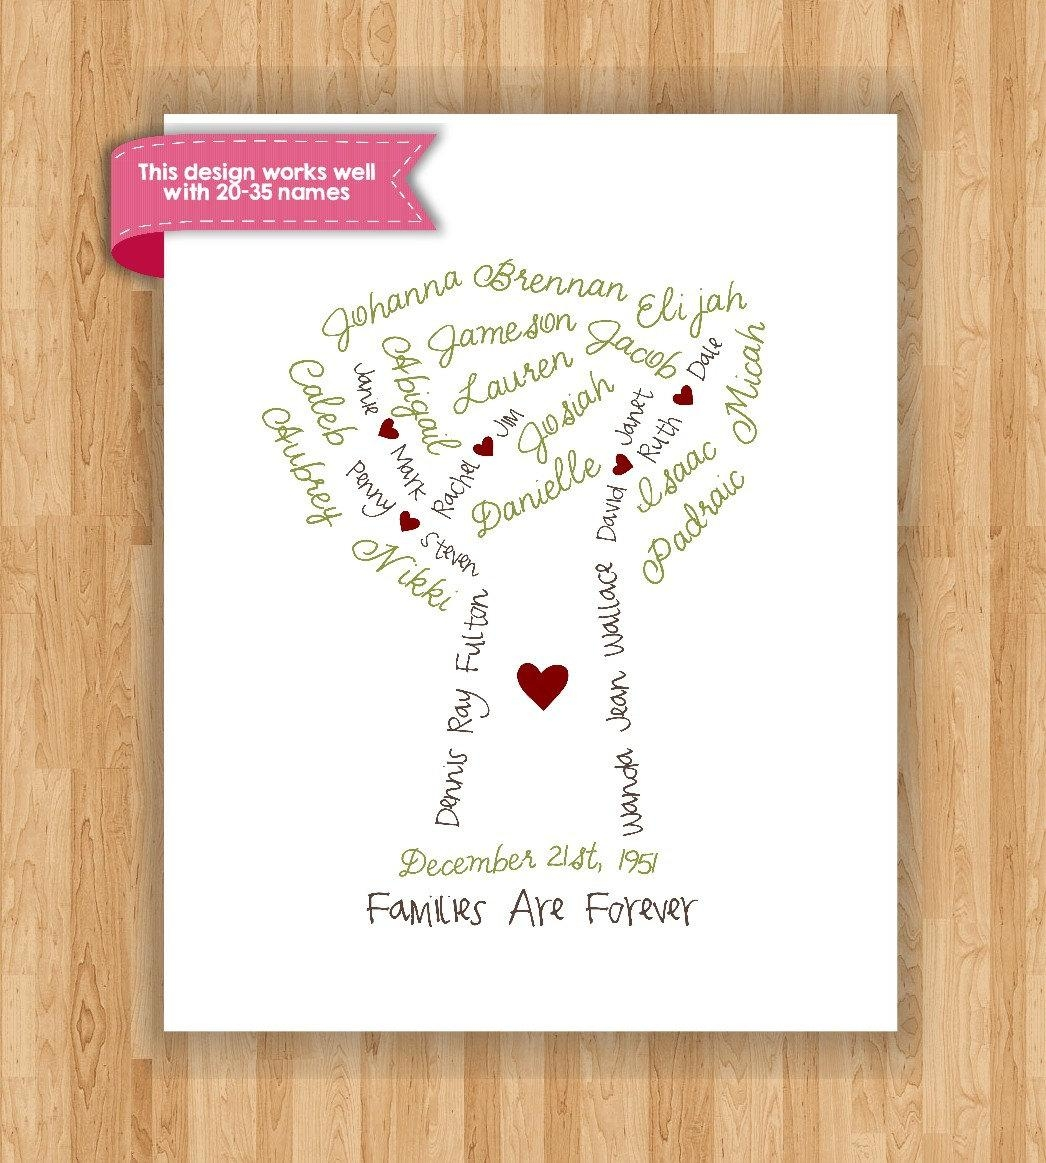 8X10 Wall Art Print Personalized Family Tree Family throughout Personalized Family Wall Art